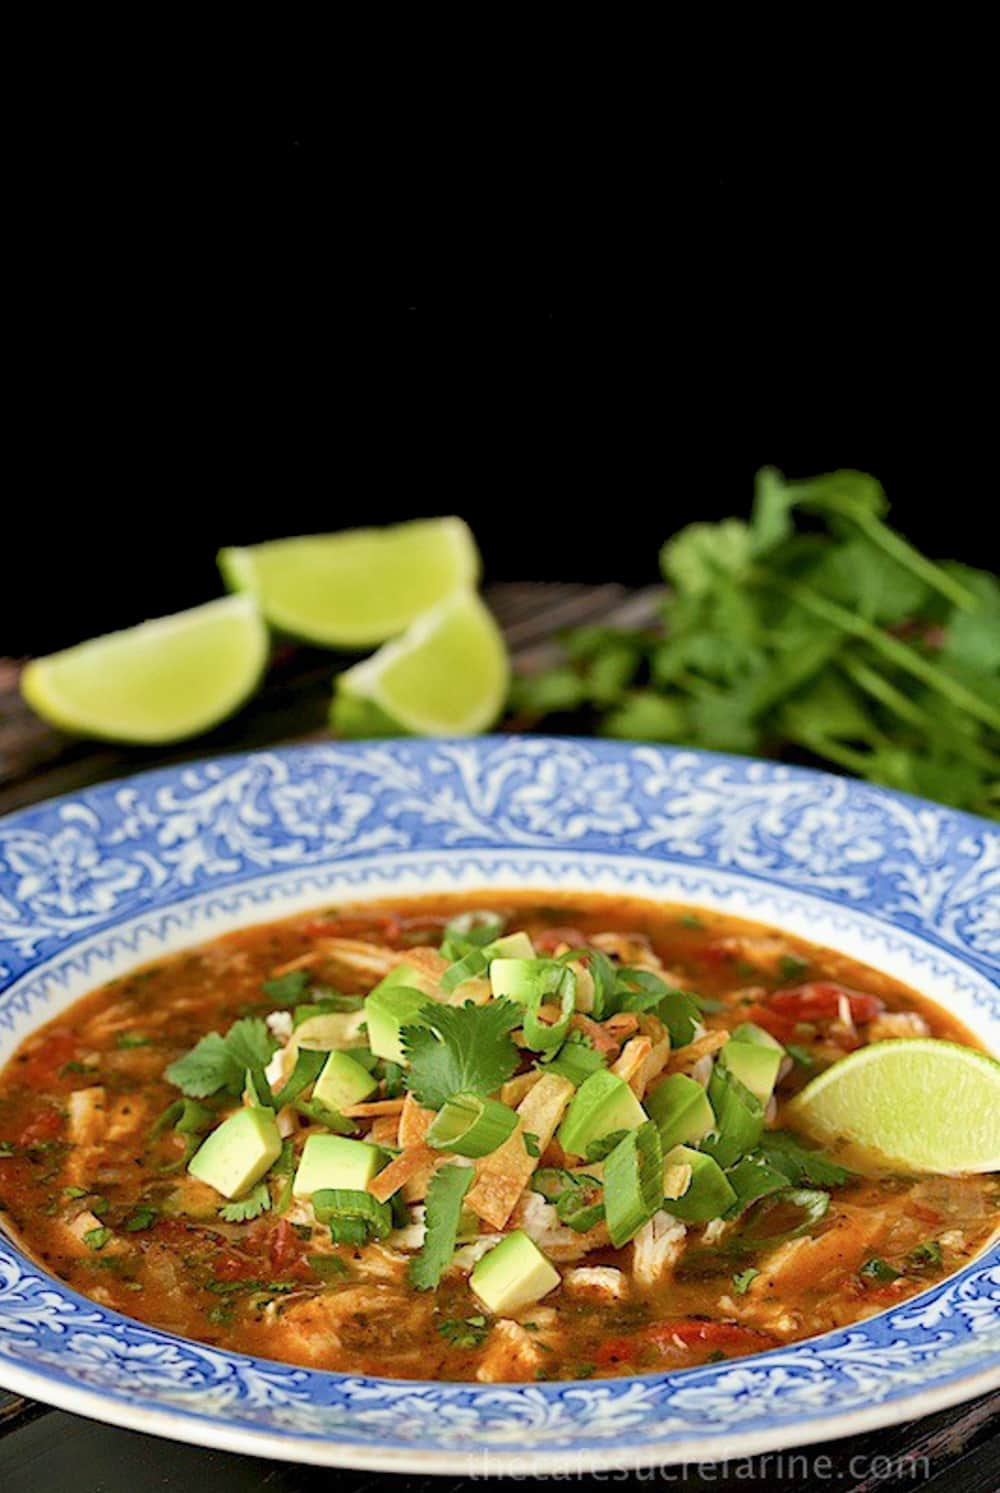 A picture of Turkey Tortilla Soup in a blue and white bowl with garnishes in the background